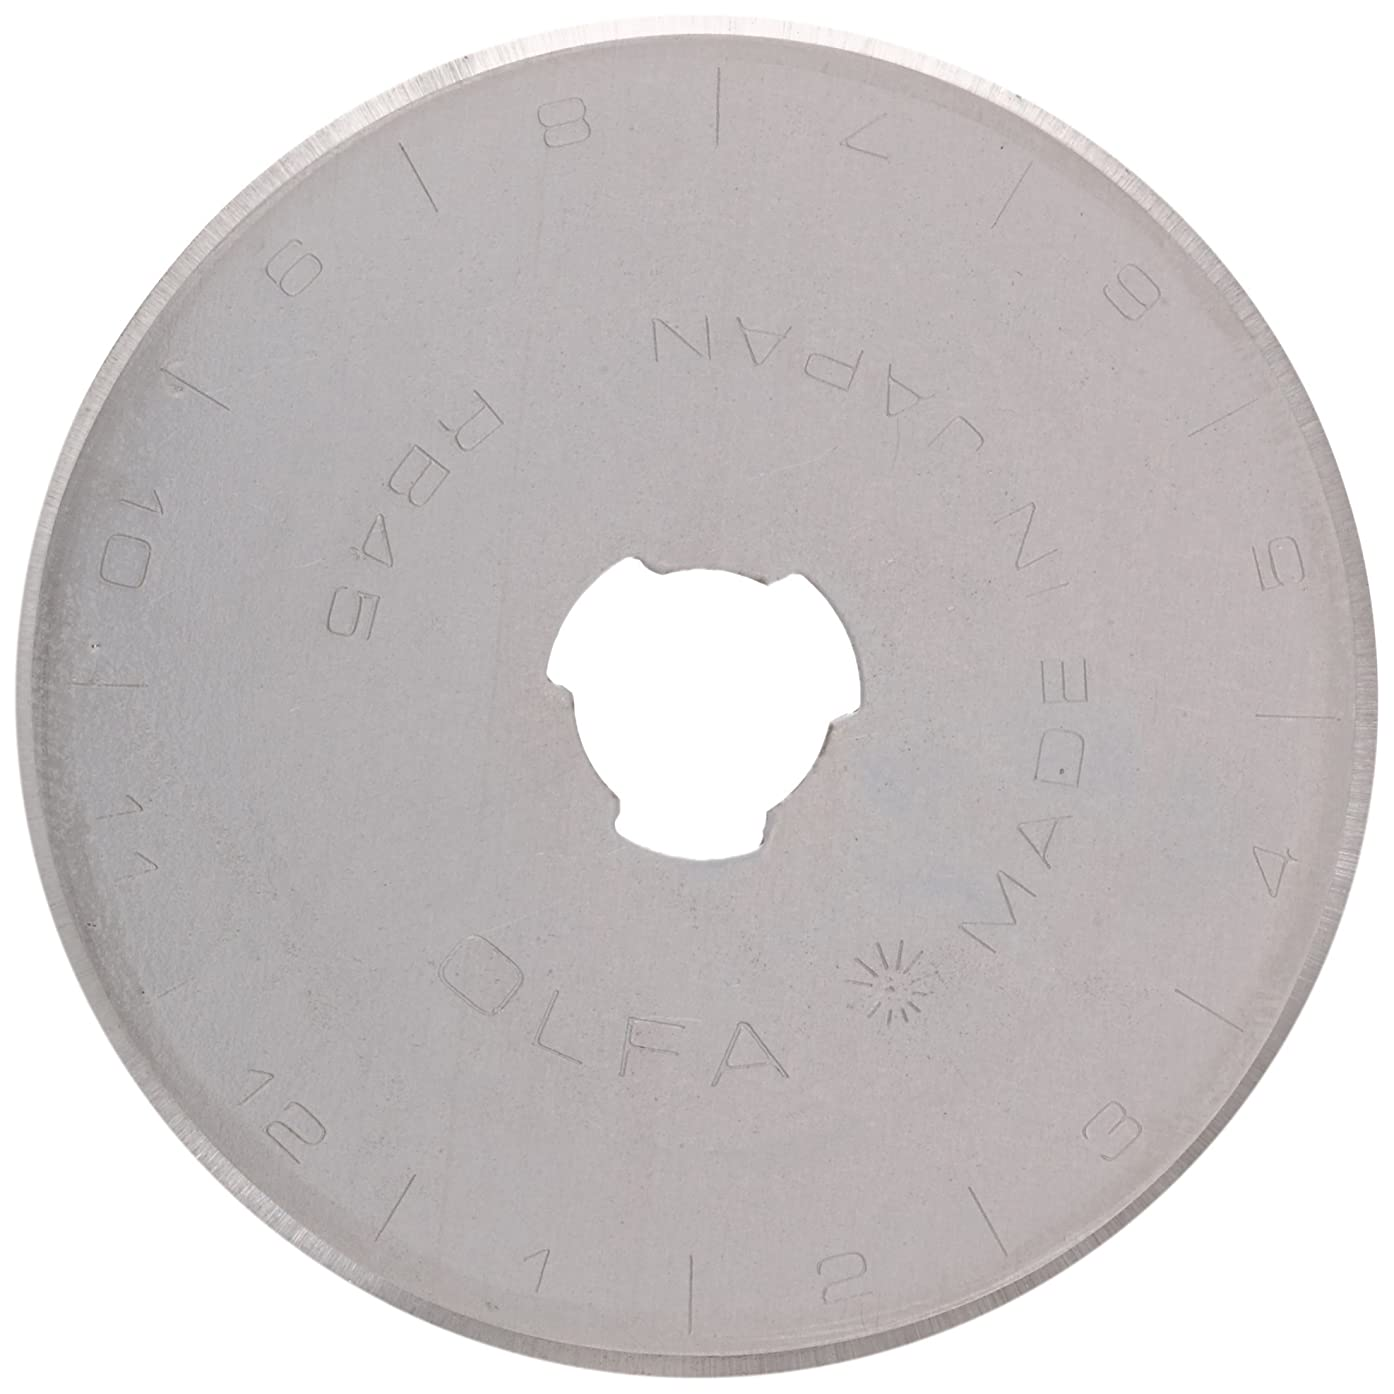 PRYM/OLFA 611372 Spare blade STANDARD for rotary cutters Size 45mm, 1 piece